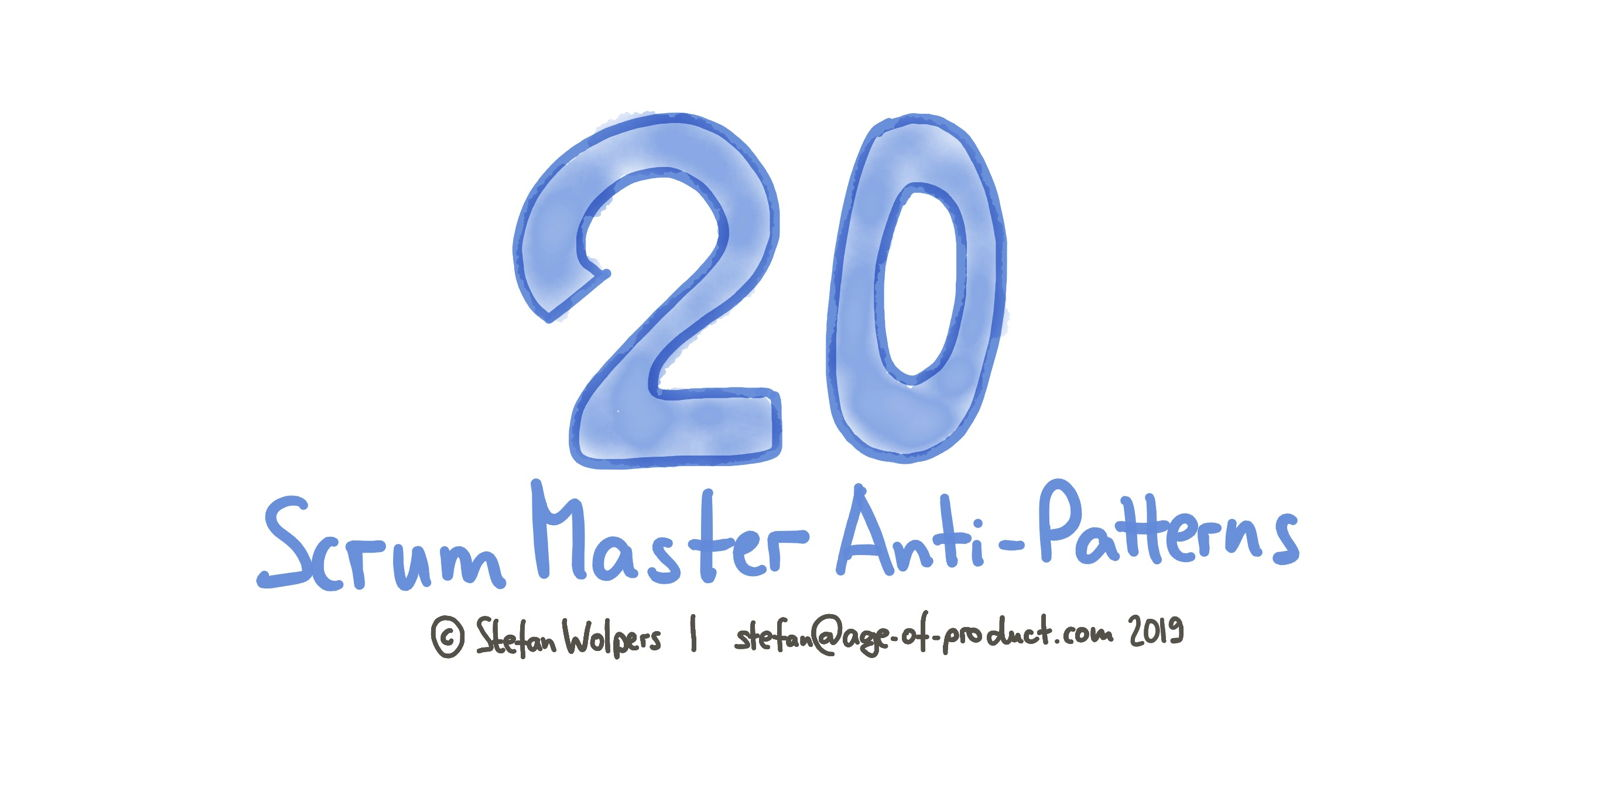 Scrum Master Anti-Patterns — 20 Signs Your Scrum Master Needs Help